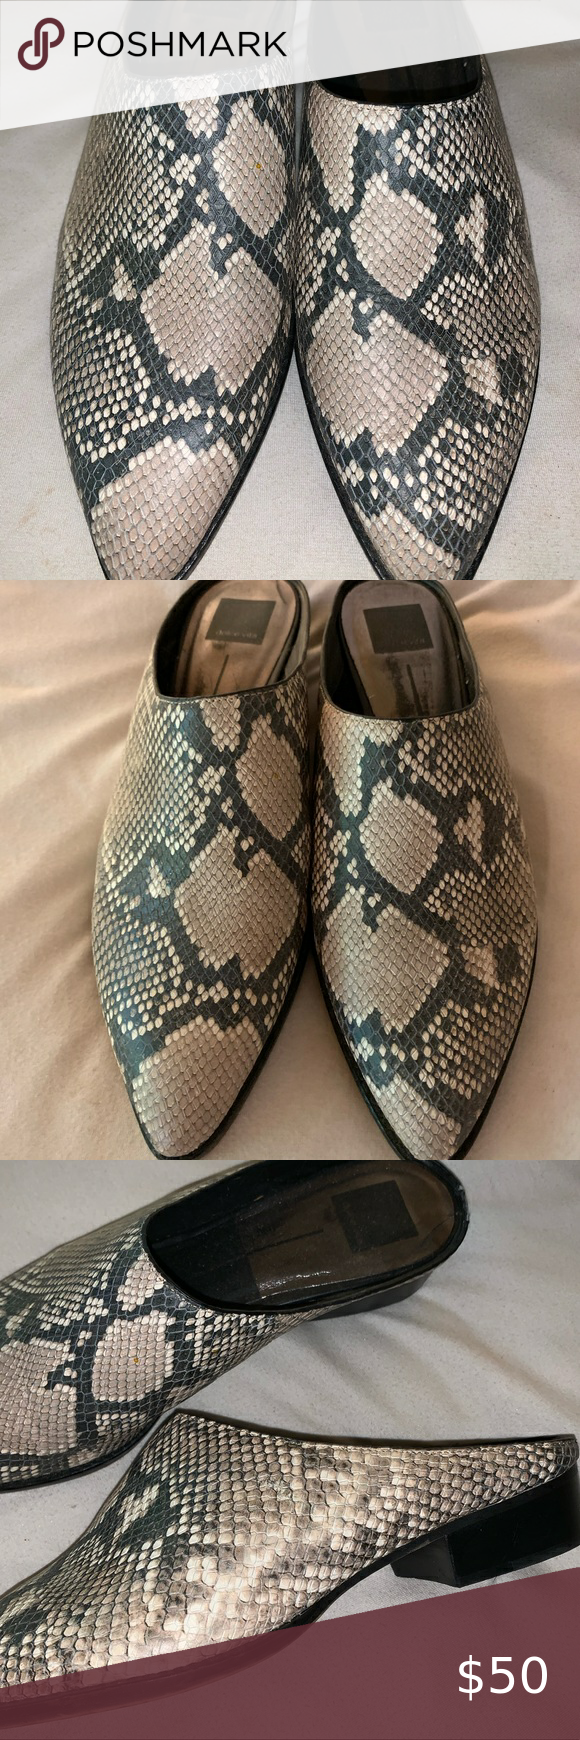 Dolce Vida snake print mules loafers size 10 WORN ONCE GREAT CONDITION   Slight …